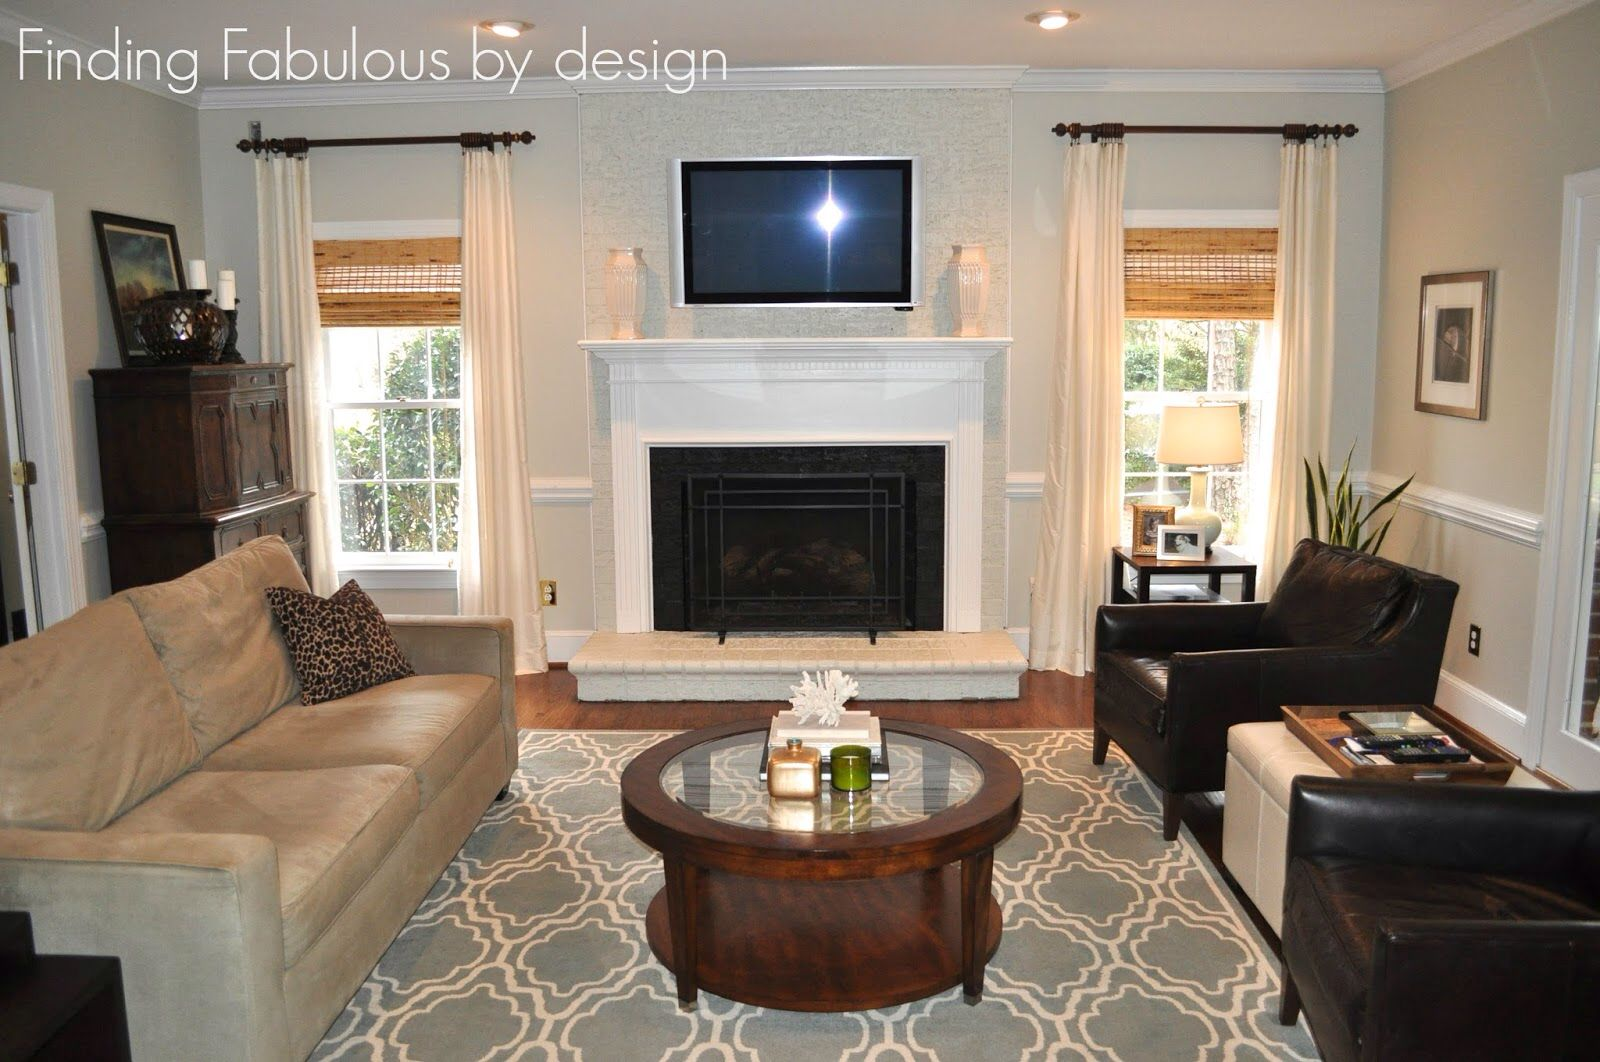 sherwin williams worldly gray living room inspiration painted brick fireplaces grey paint. Black Bedroom Furniture Sets. Home Design Ideas